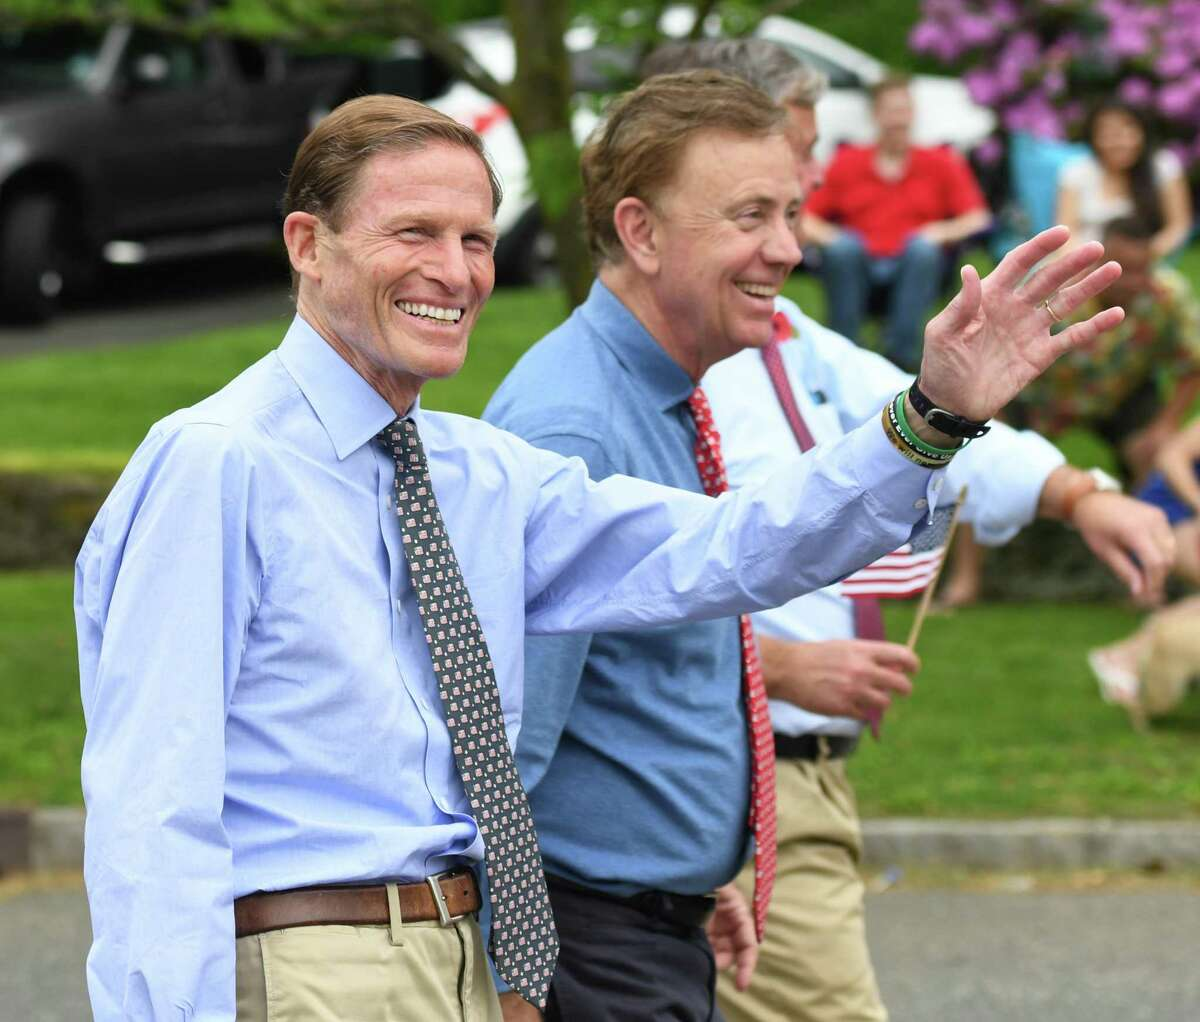 Photos from the annual Memorial Day Parade in the Glenville section of Greenwich, Conn. Sunday, May 26, 2019. The parade and ceremony, hosted by the Ninth District Veterans Association and the Glenville Volunteer Fire Co., was attended by Connecticut Gov. Ned Lamont, U.S. Sen. Richard Blumenthal, and local represntatives. U.S. Navy Air Force veteran Anthony William Muskus was presented with the Convoy Cup Certificate of Appreciation.